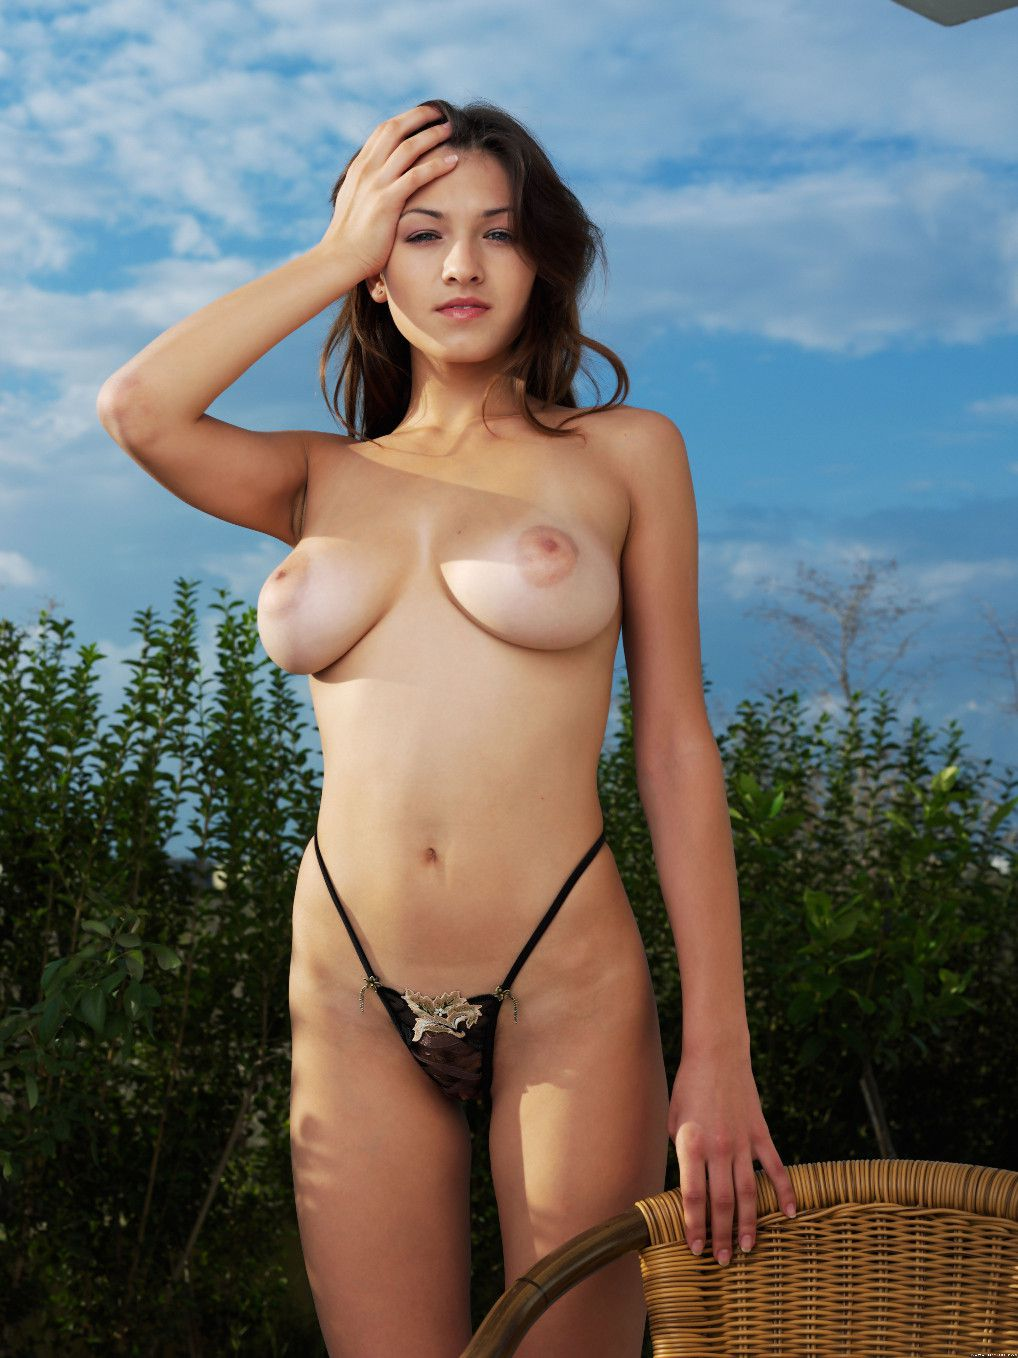 posing nude outside